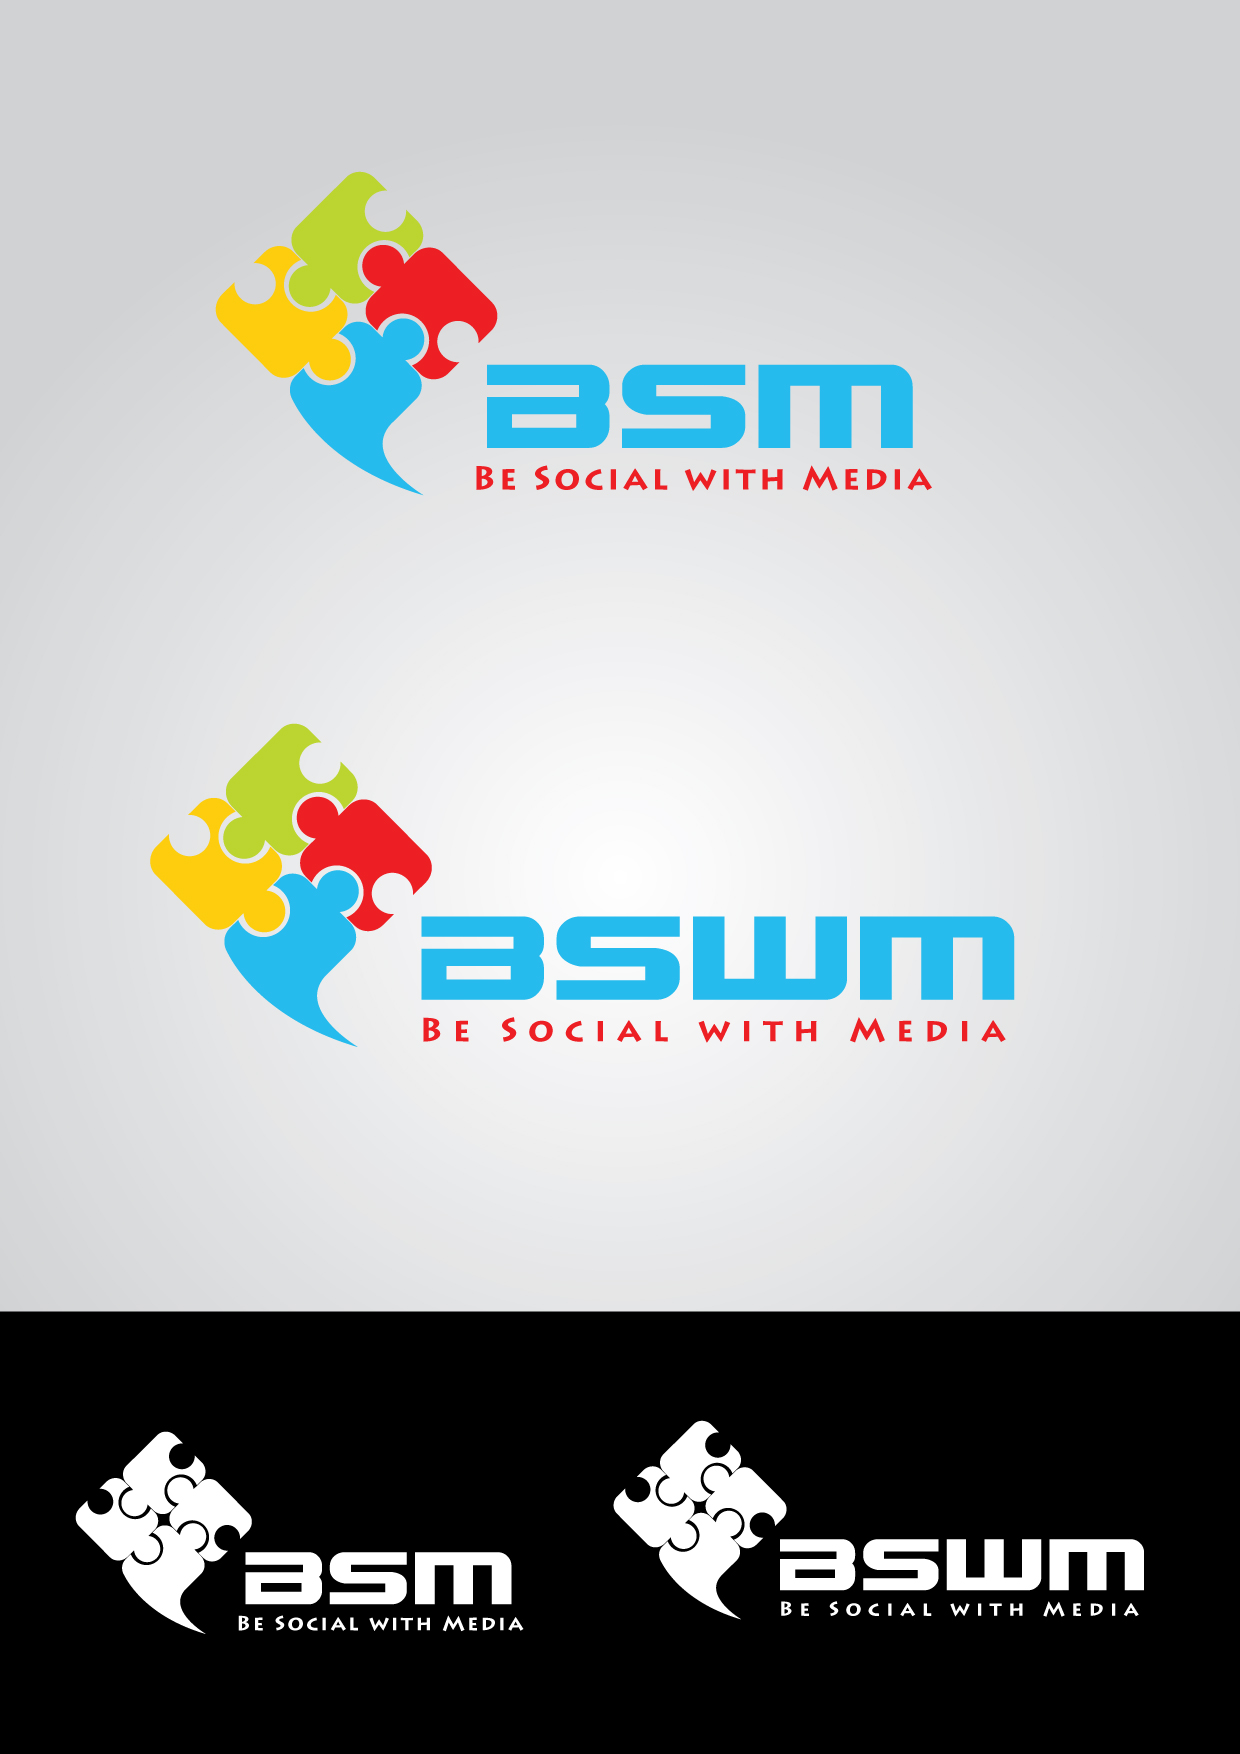 Logo Design by mediaproductionart - Entry No. 88 in the Logo Design Contest Imaginative Logo Design for Be Social With Media.